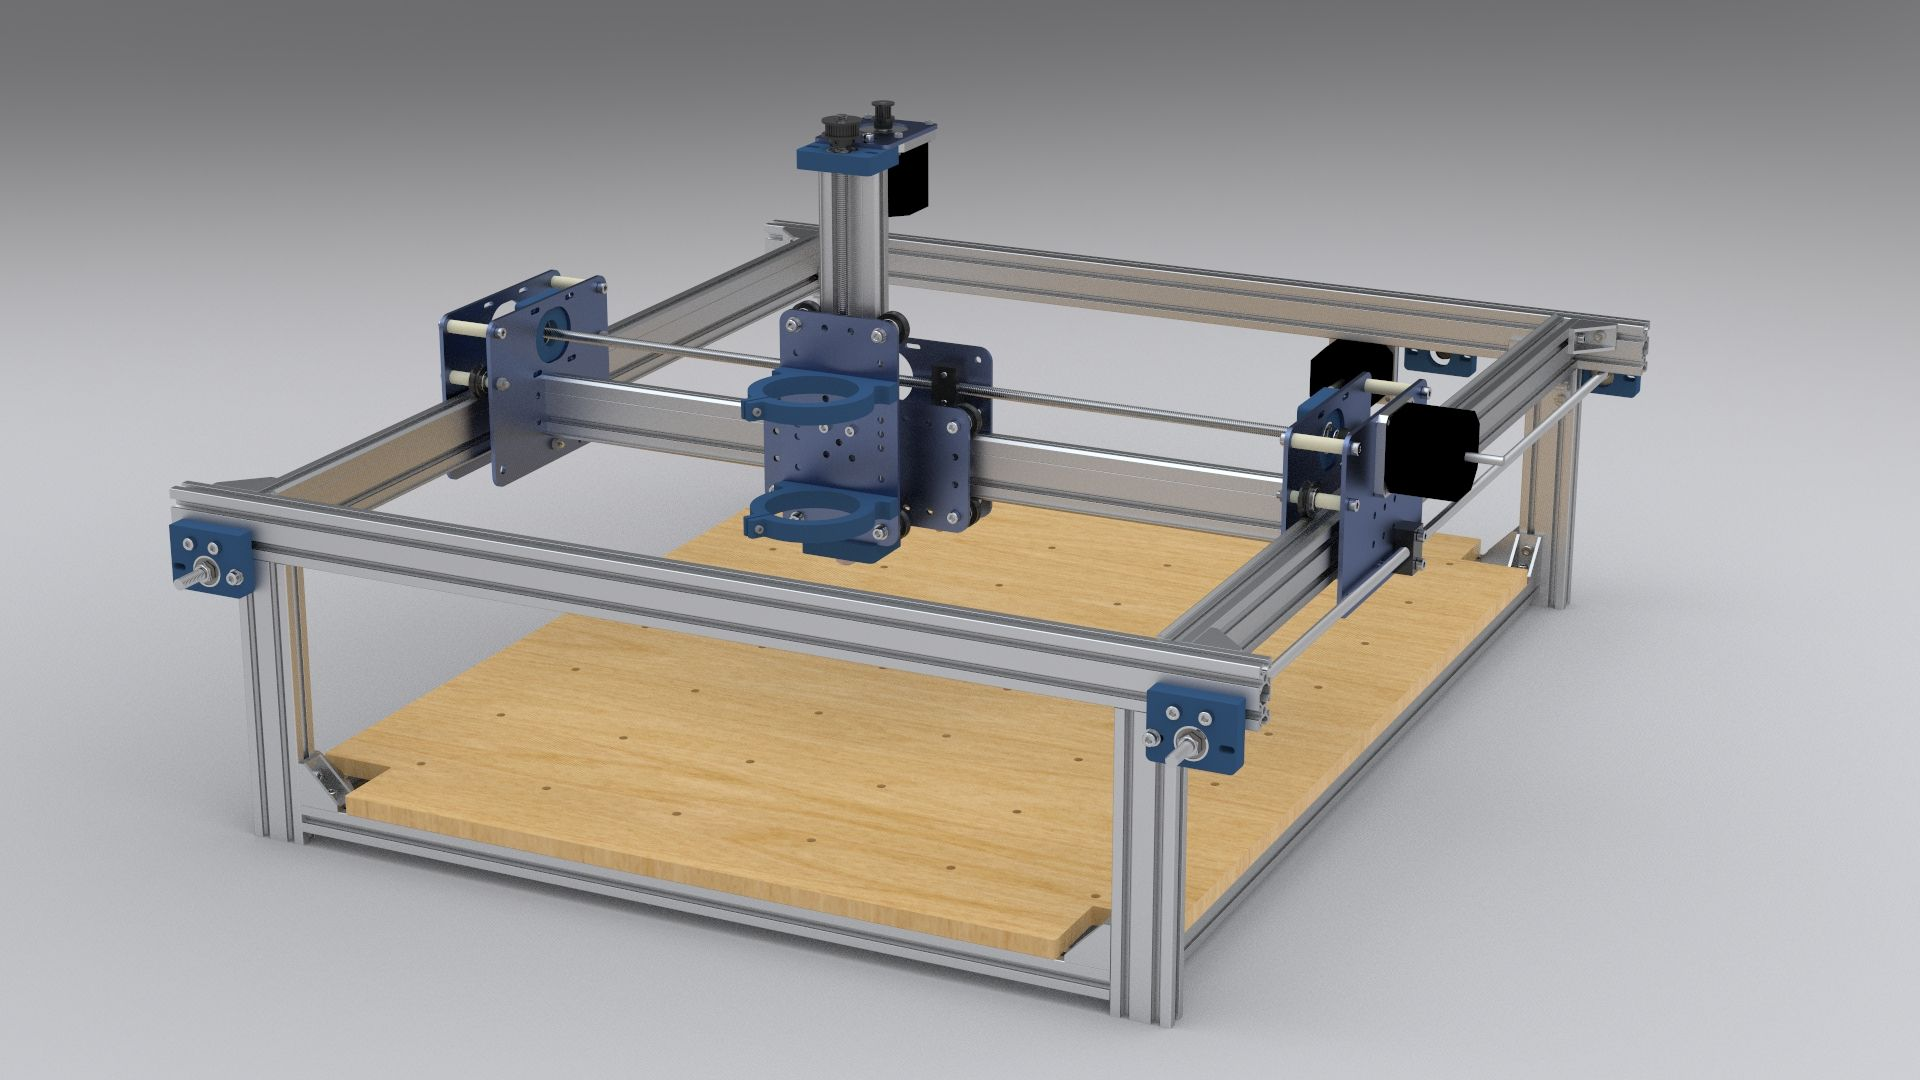 Cnc router this is one of many proposed